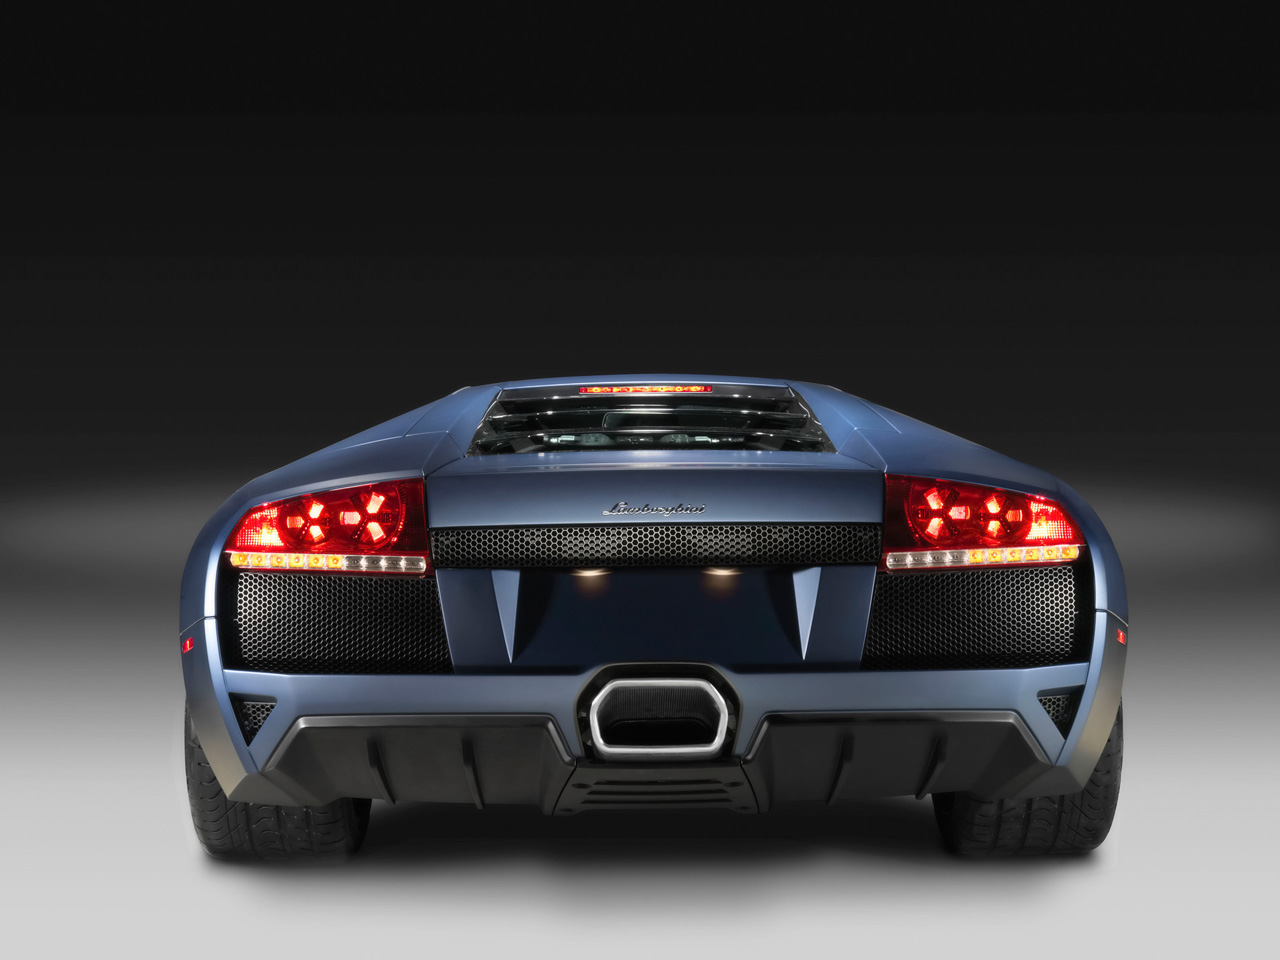 ... 2010 Lamborghini Murcielago Price | Wallpaper Car HD ...